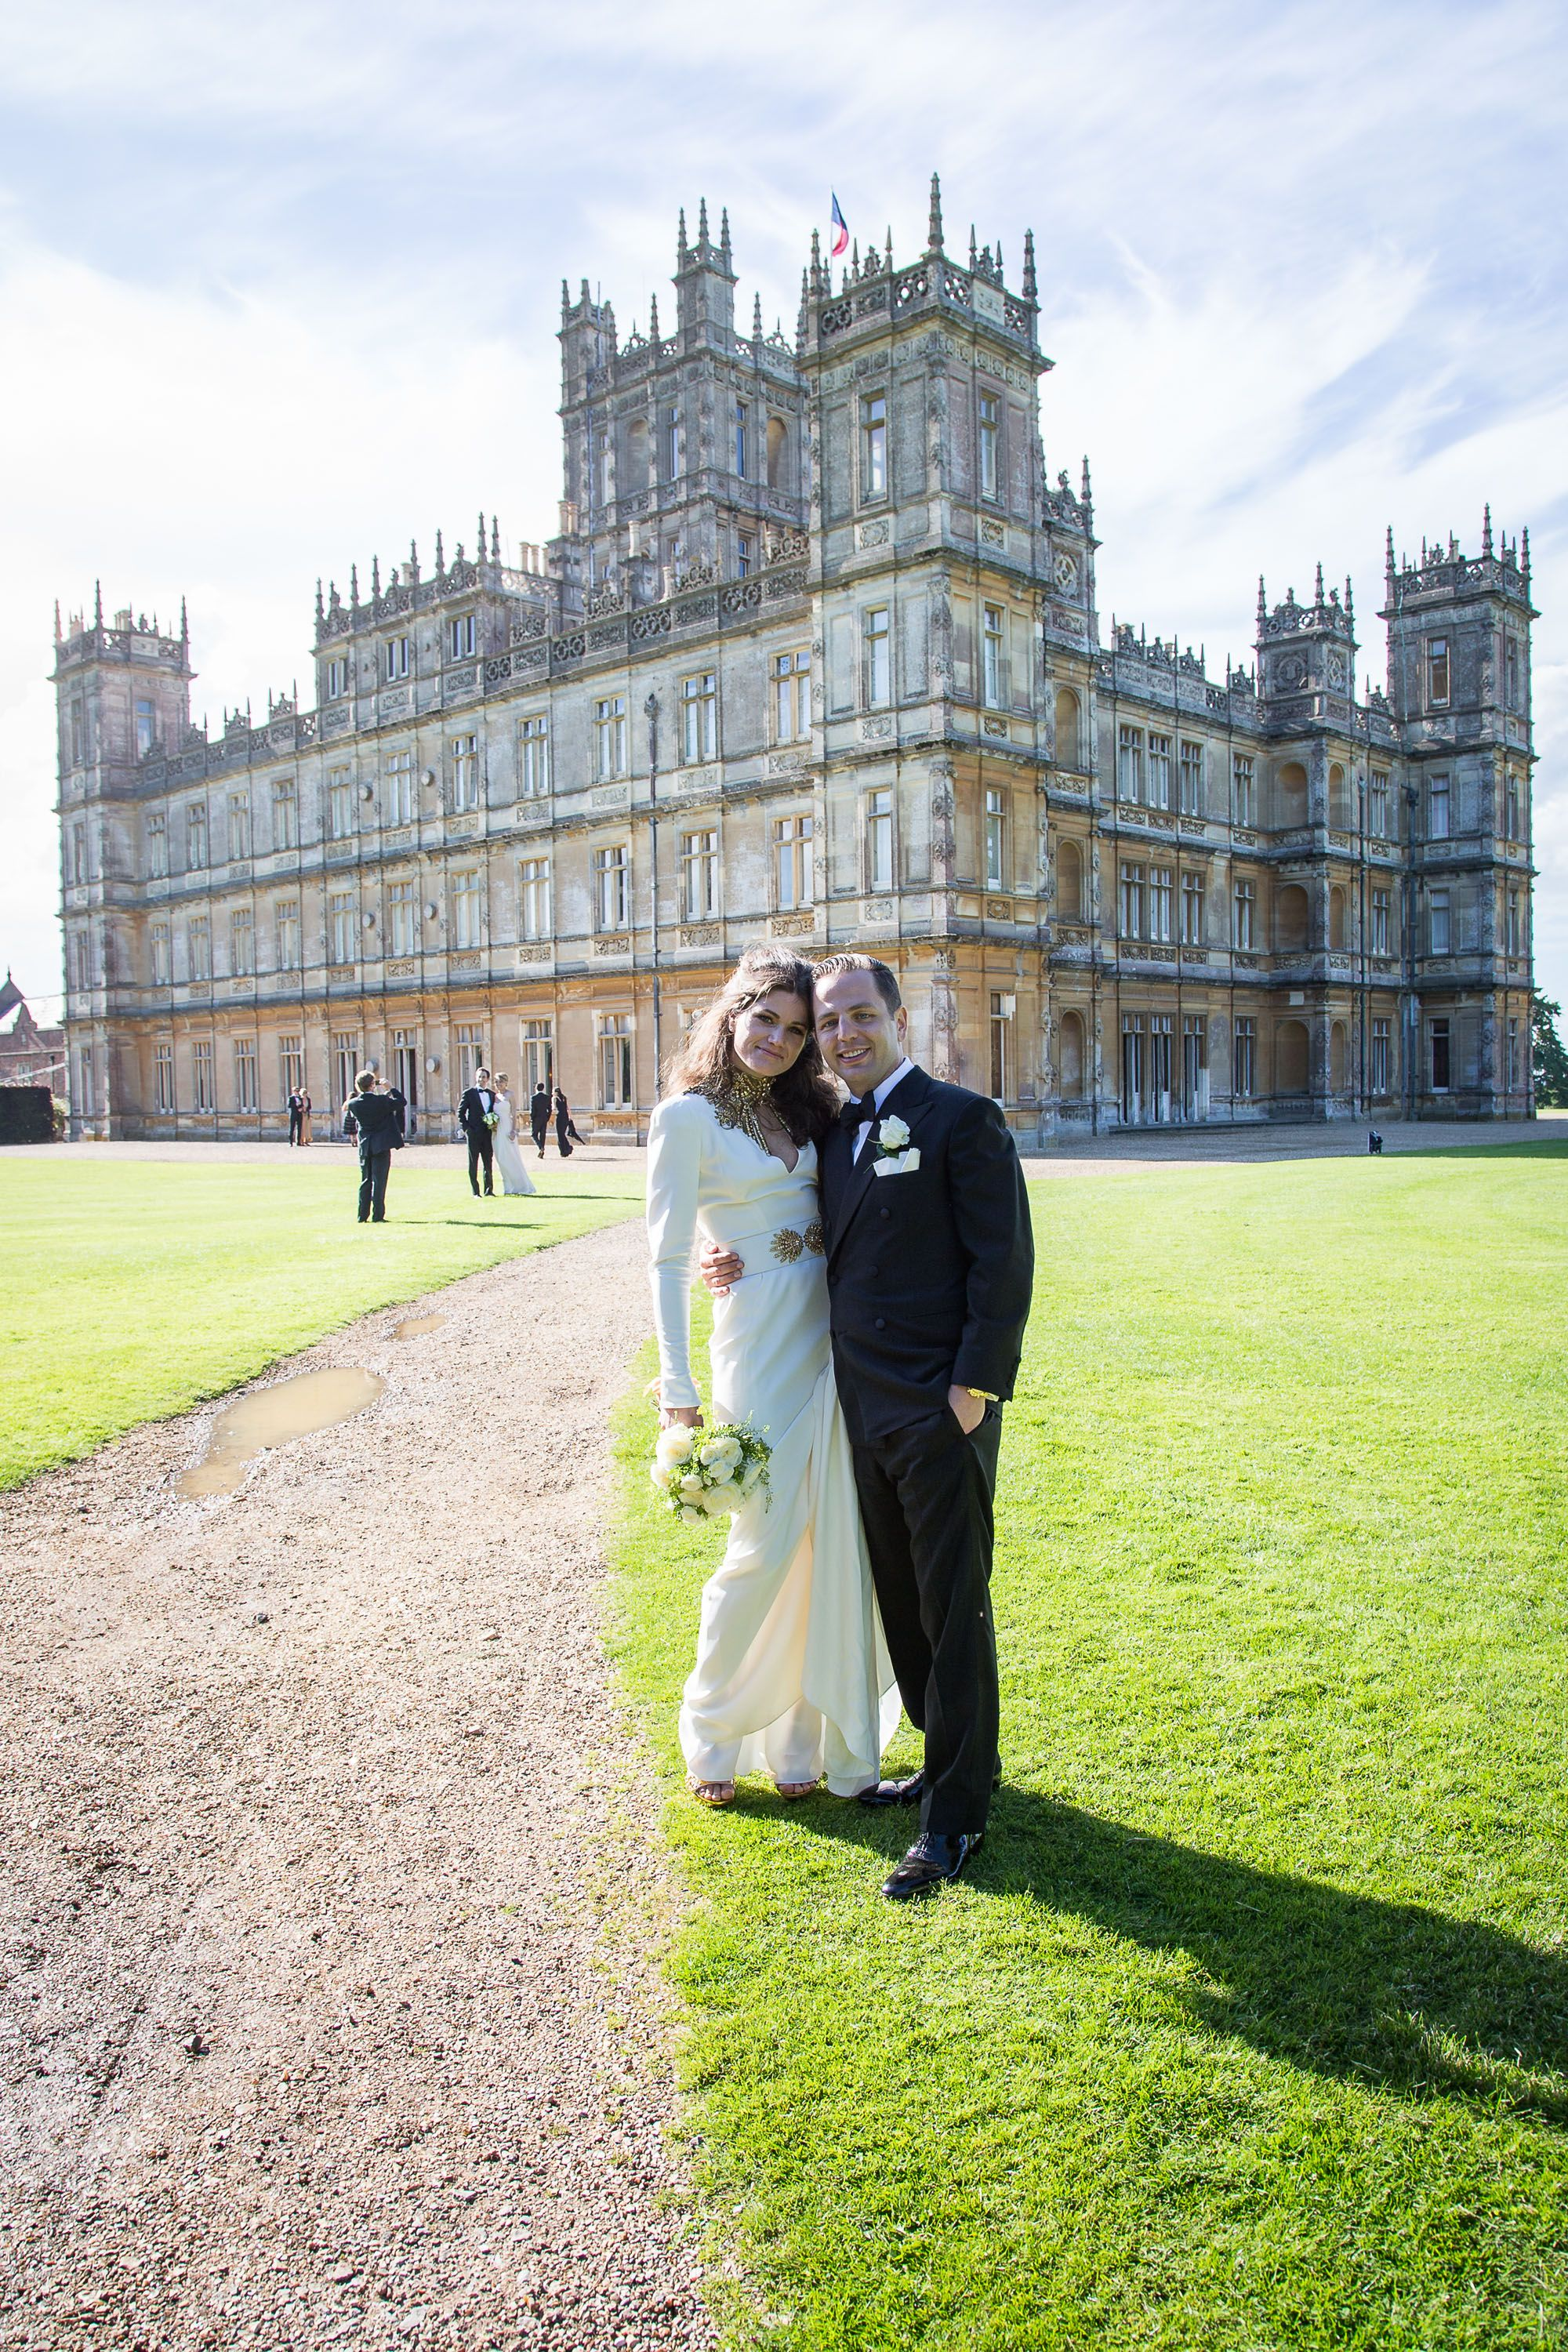 What It's Really Like to Get Married at Downton Abbey